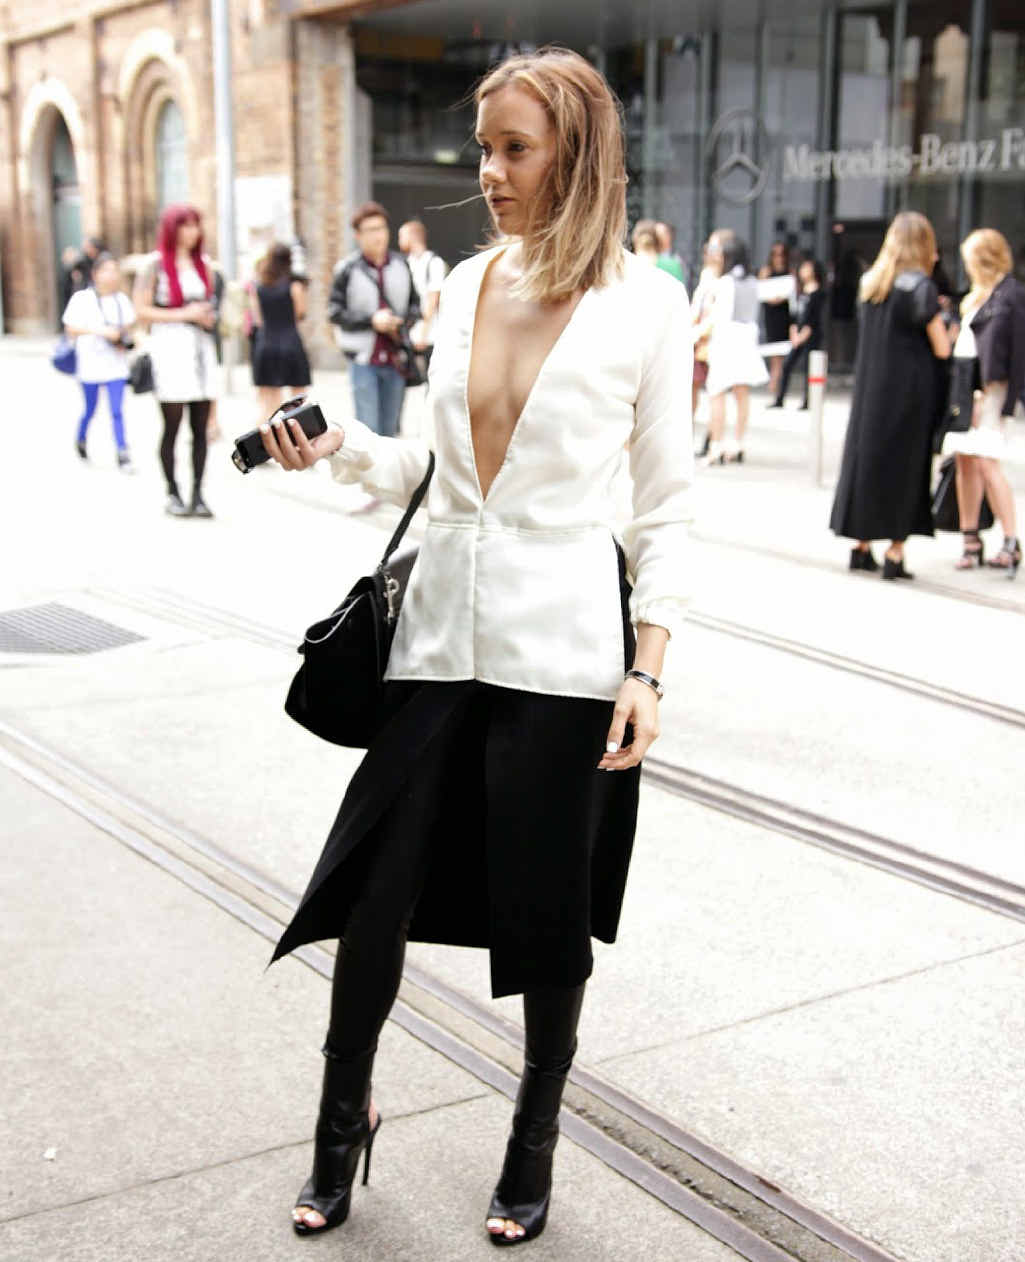 FREESTYLE FASHIONISTA: Gabby poses in the same outfit that was featured on Elle Australia. Inset: Gabby takes a quick snap at Mercedes-Benz Fashion Week Australia.